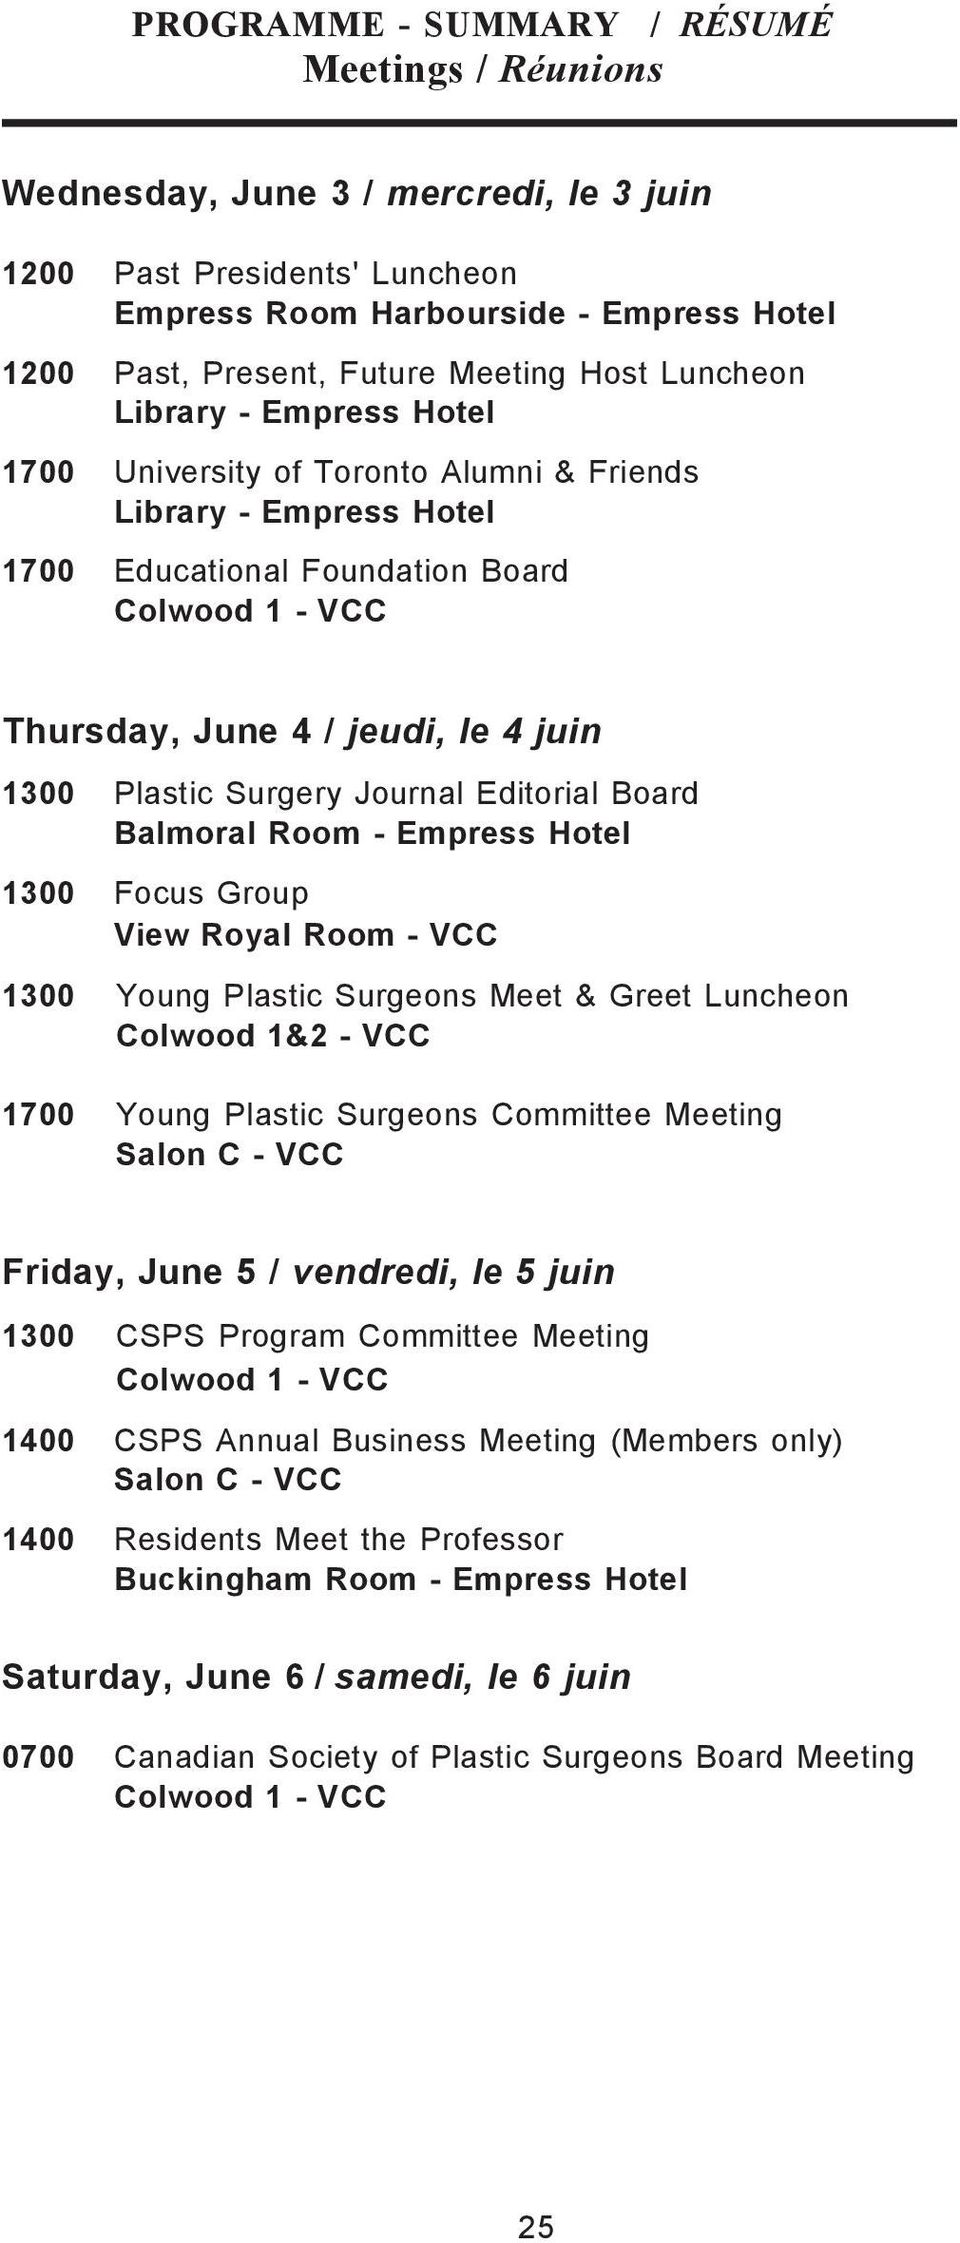 Plastic Surgery Journal Editorial Board Balmoral Room - Empress Hotel 1300 Focus Group View Royal Room - VCC 1300 Young Plastic Surgeons Meet & Greet Luncheon Colwood 1&2 - VCC 1700 Young Plastic